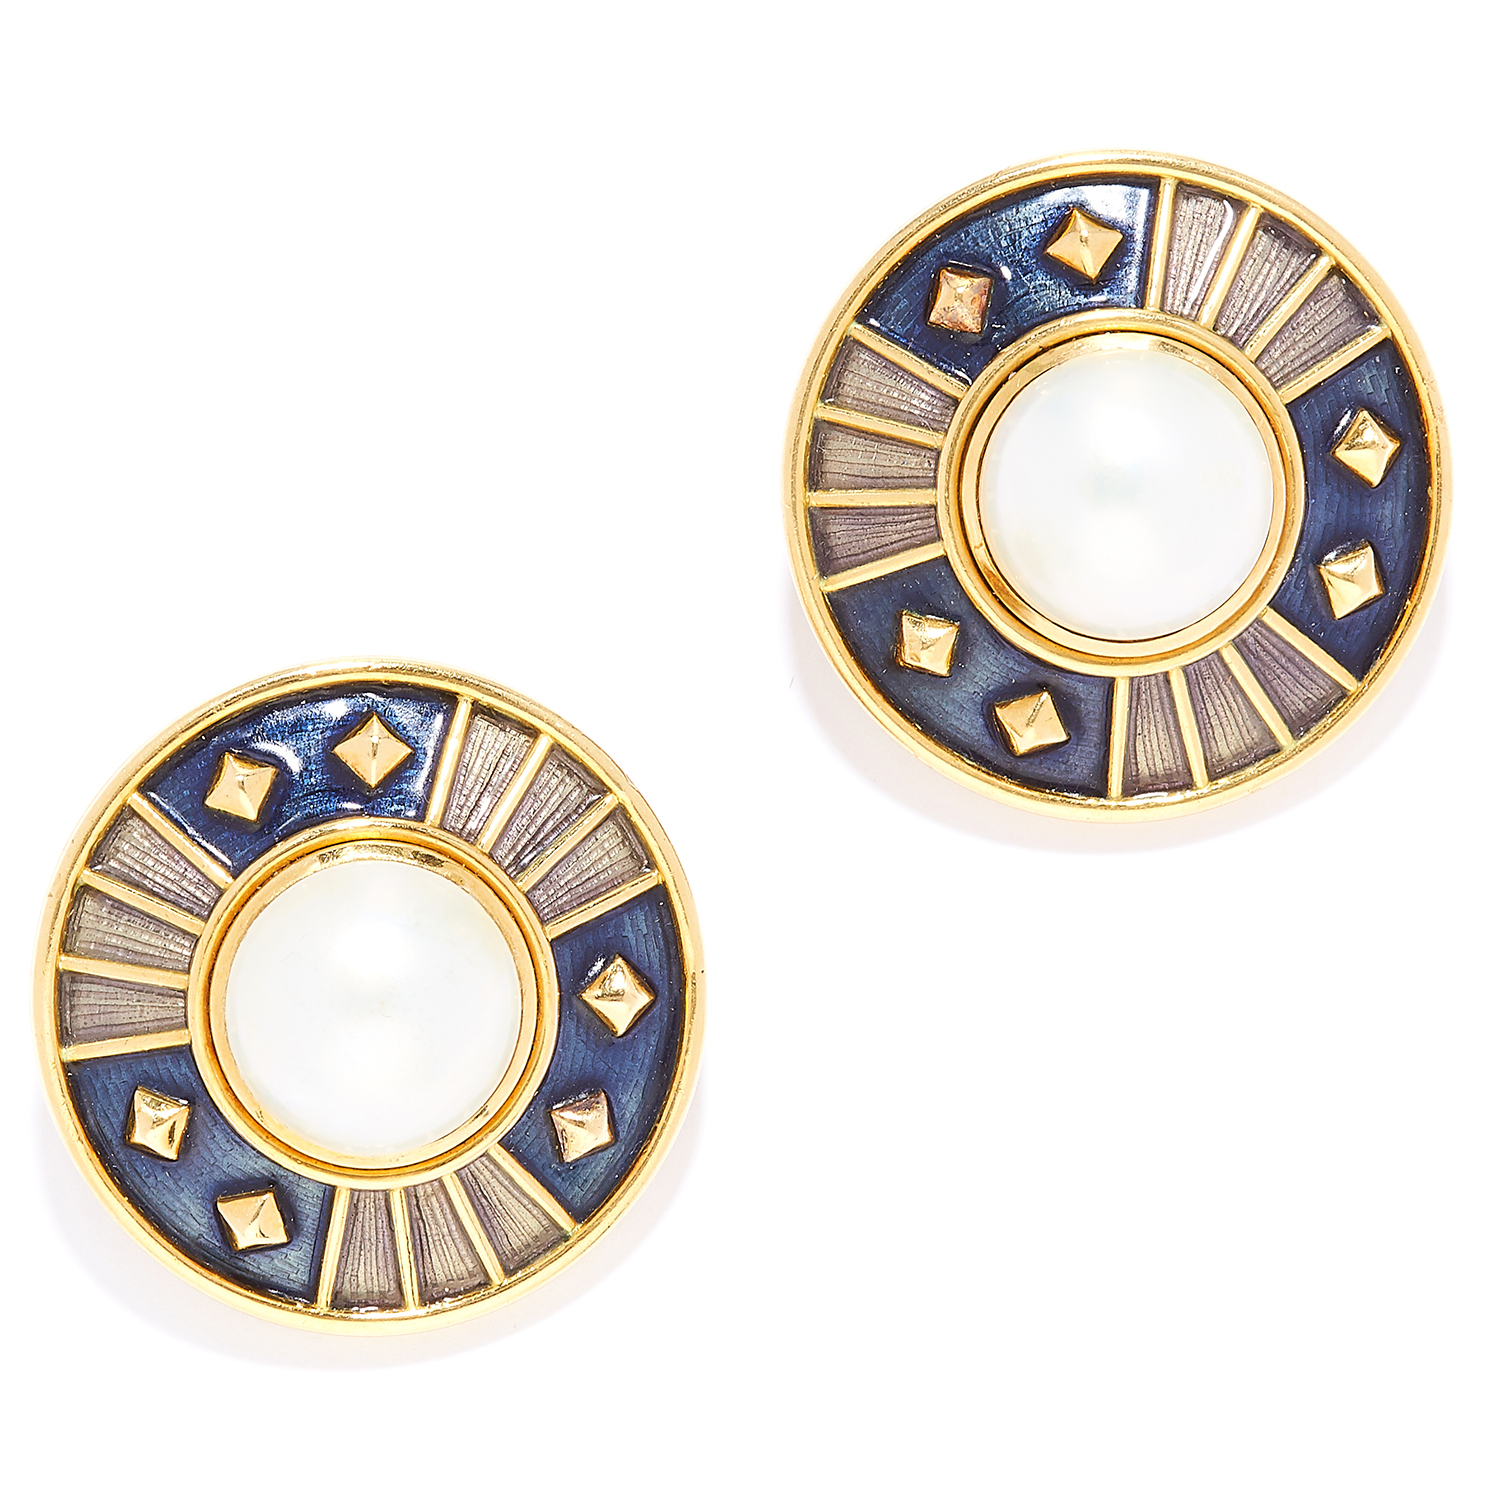 Los 52 - PEARL AND ENAMEL CLIP EARRINGS, LEO DE VROOMEN in 18ct yellow gold each set with a mabe pearl